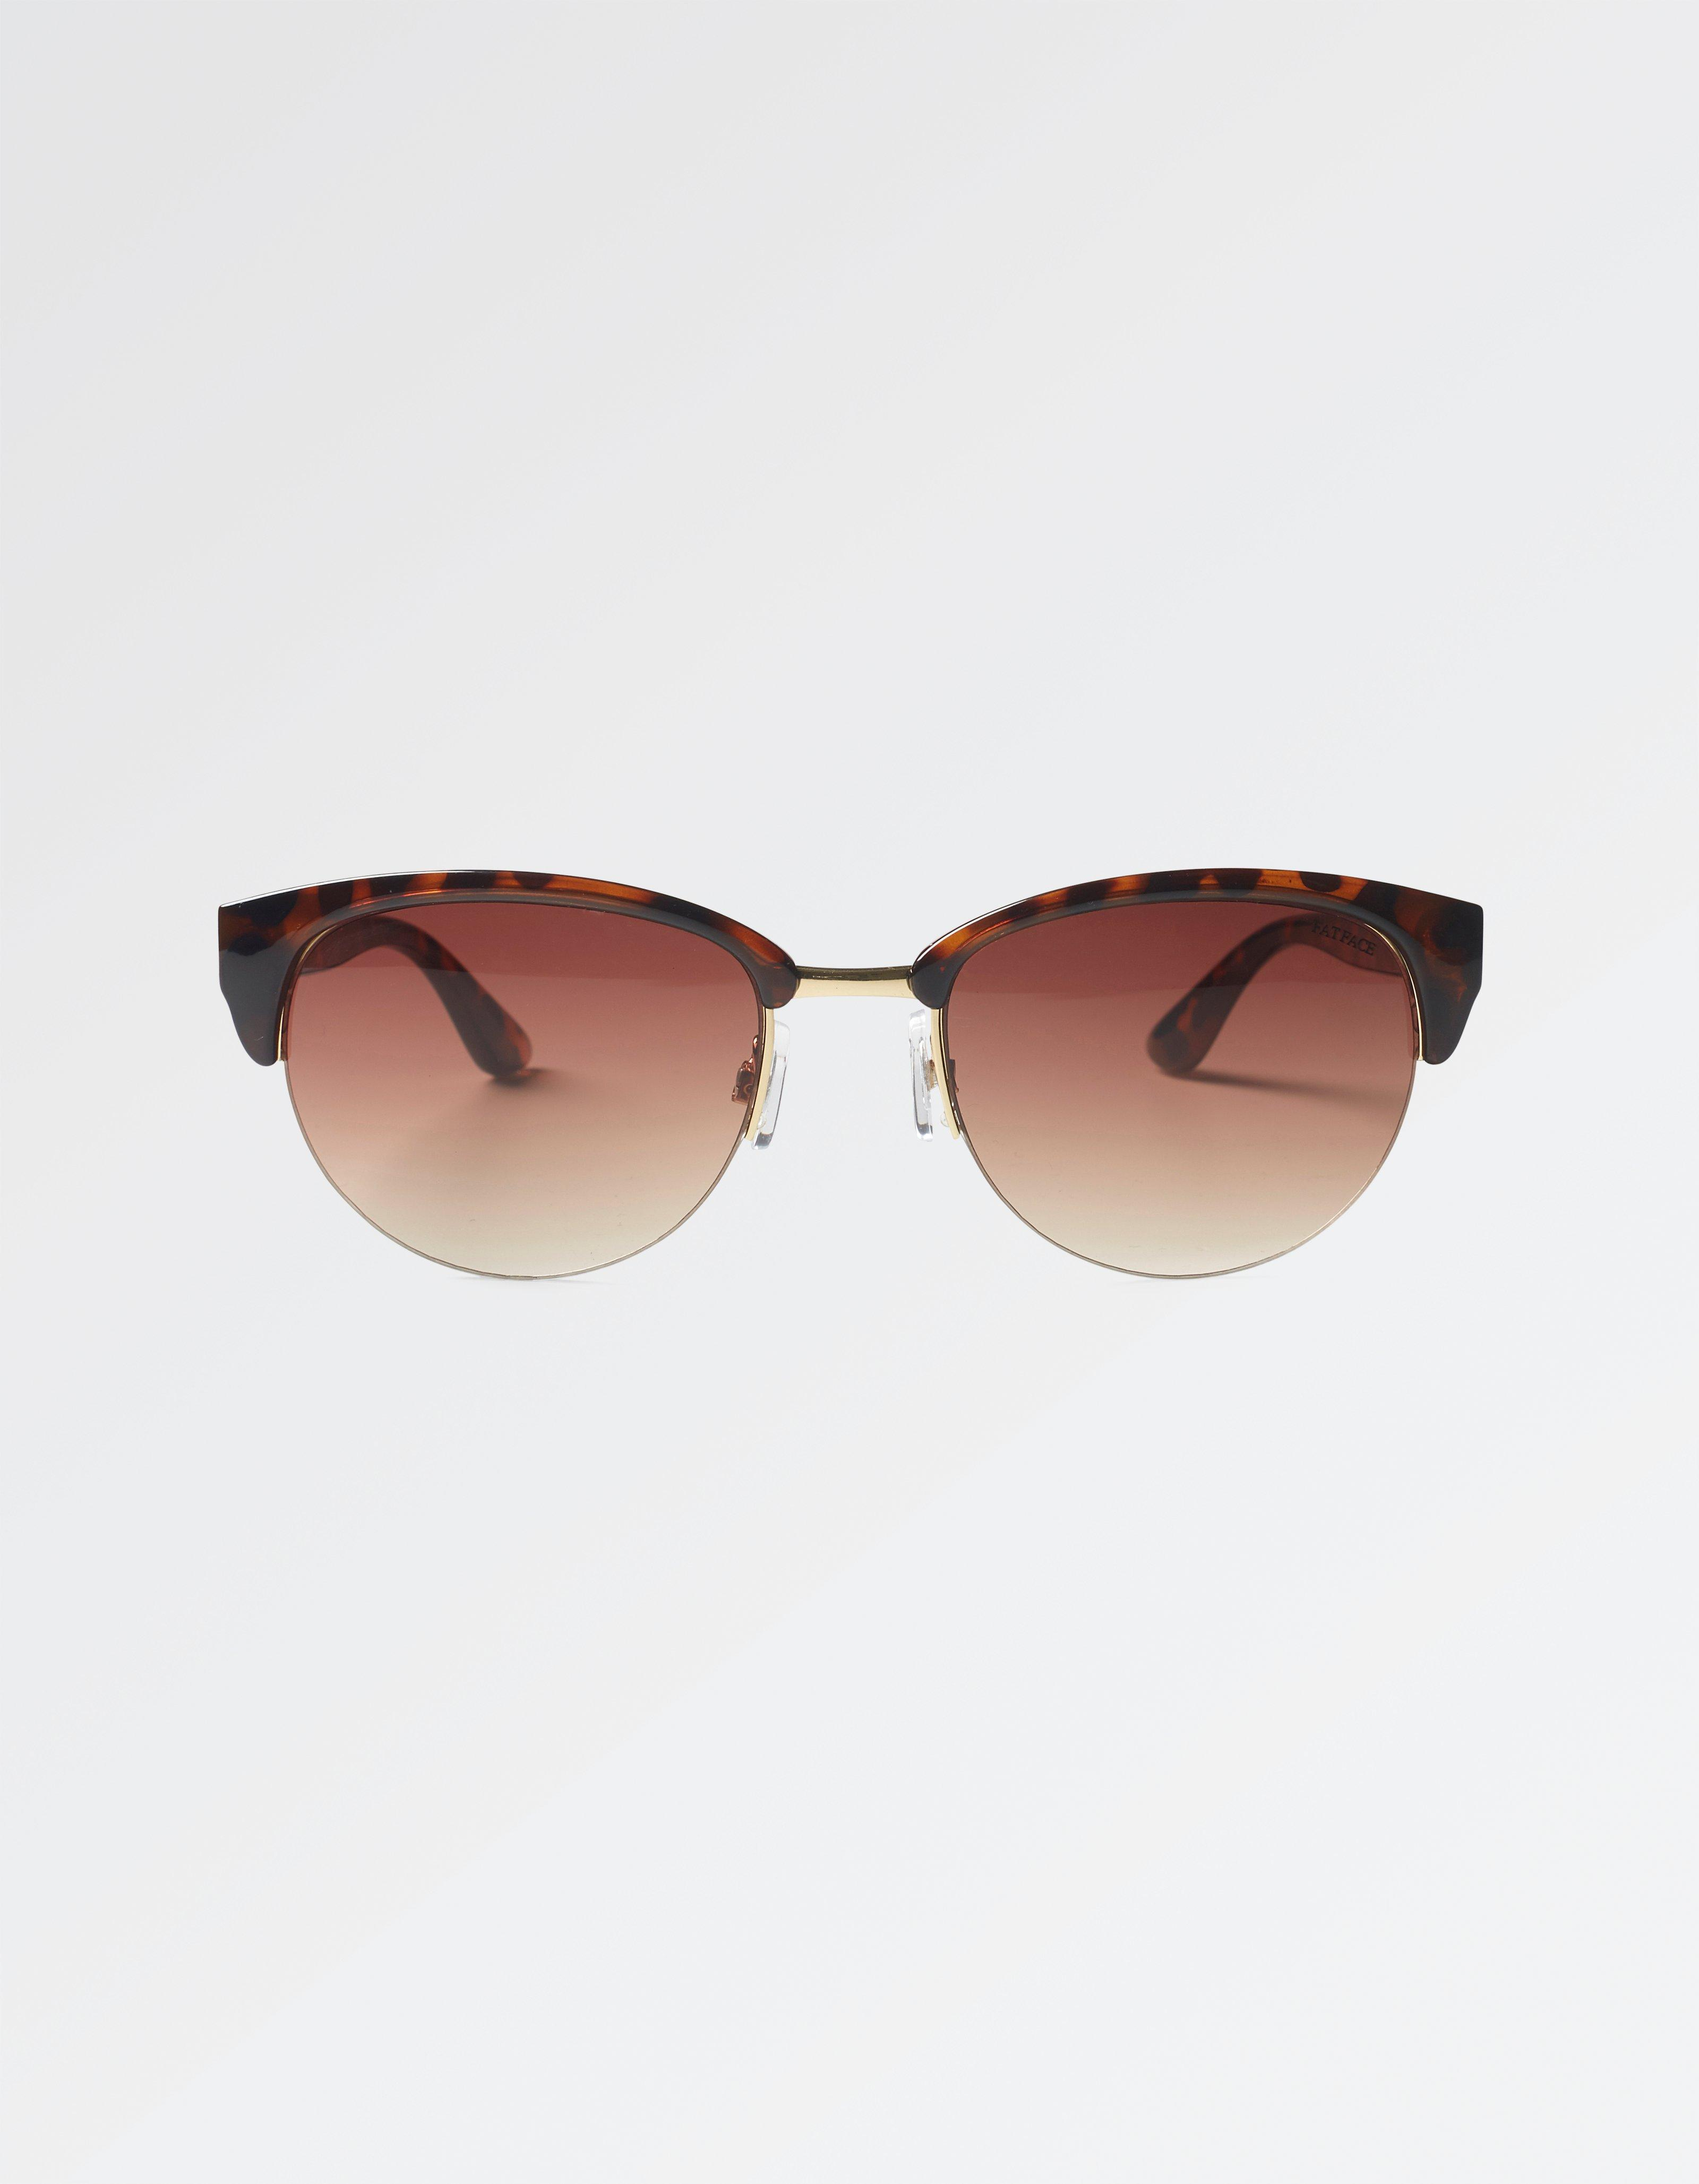 e5fed1c1df Fat Face Round Clubmaster Sunglasses - Fat Face at Westquay - Shop Online